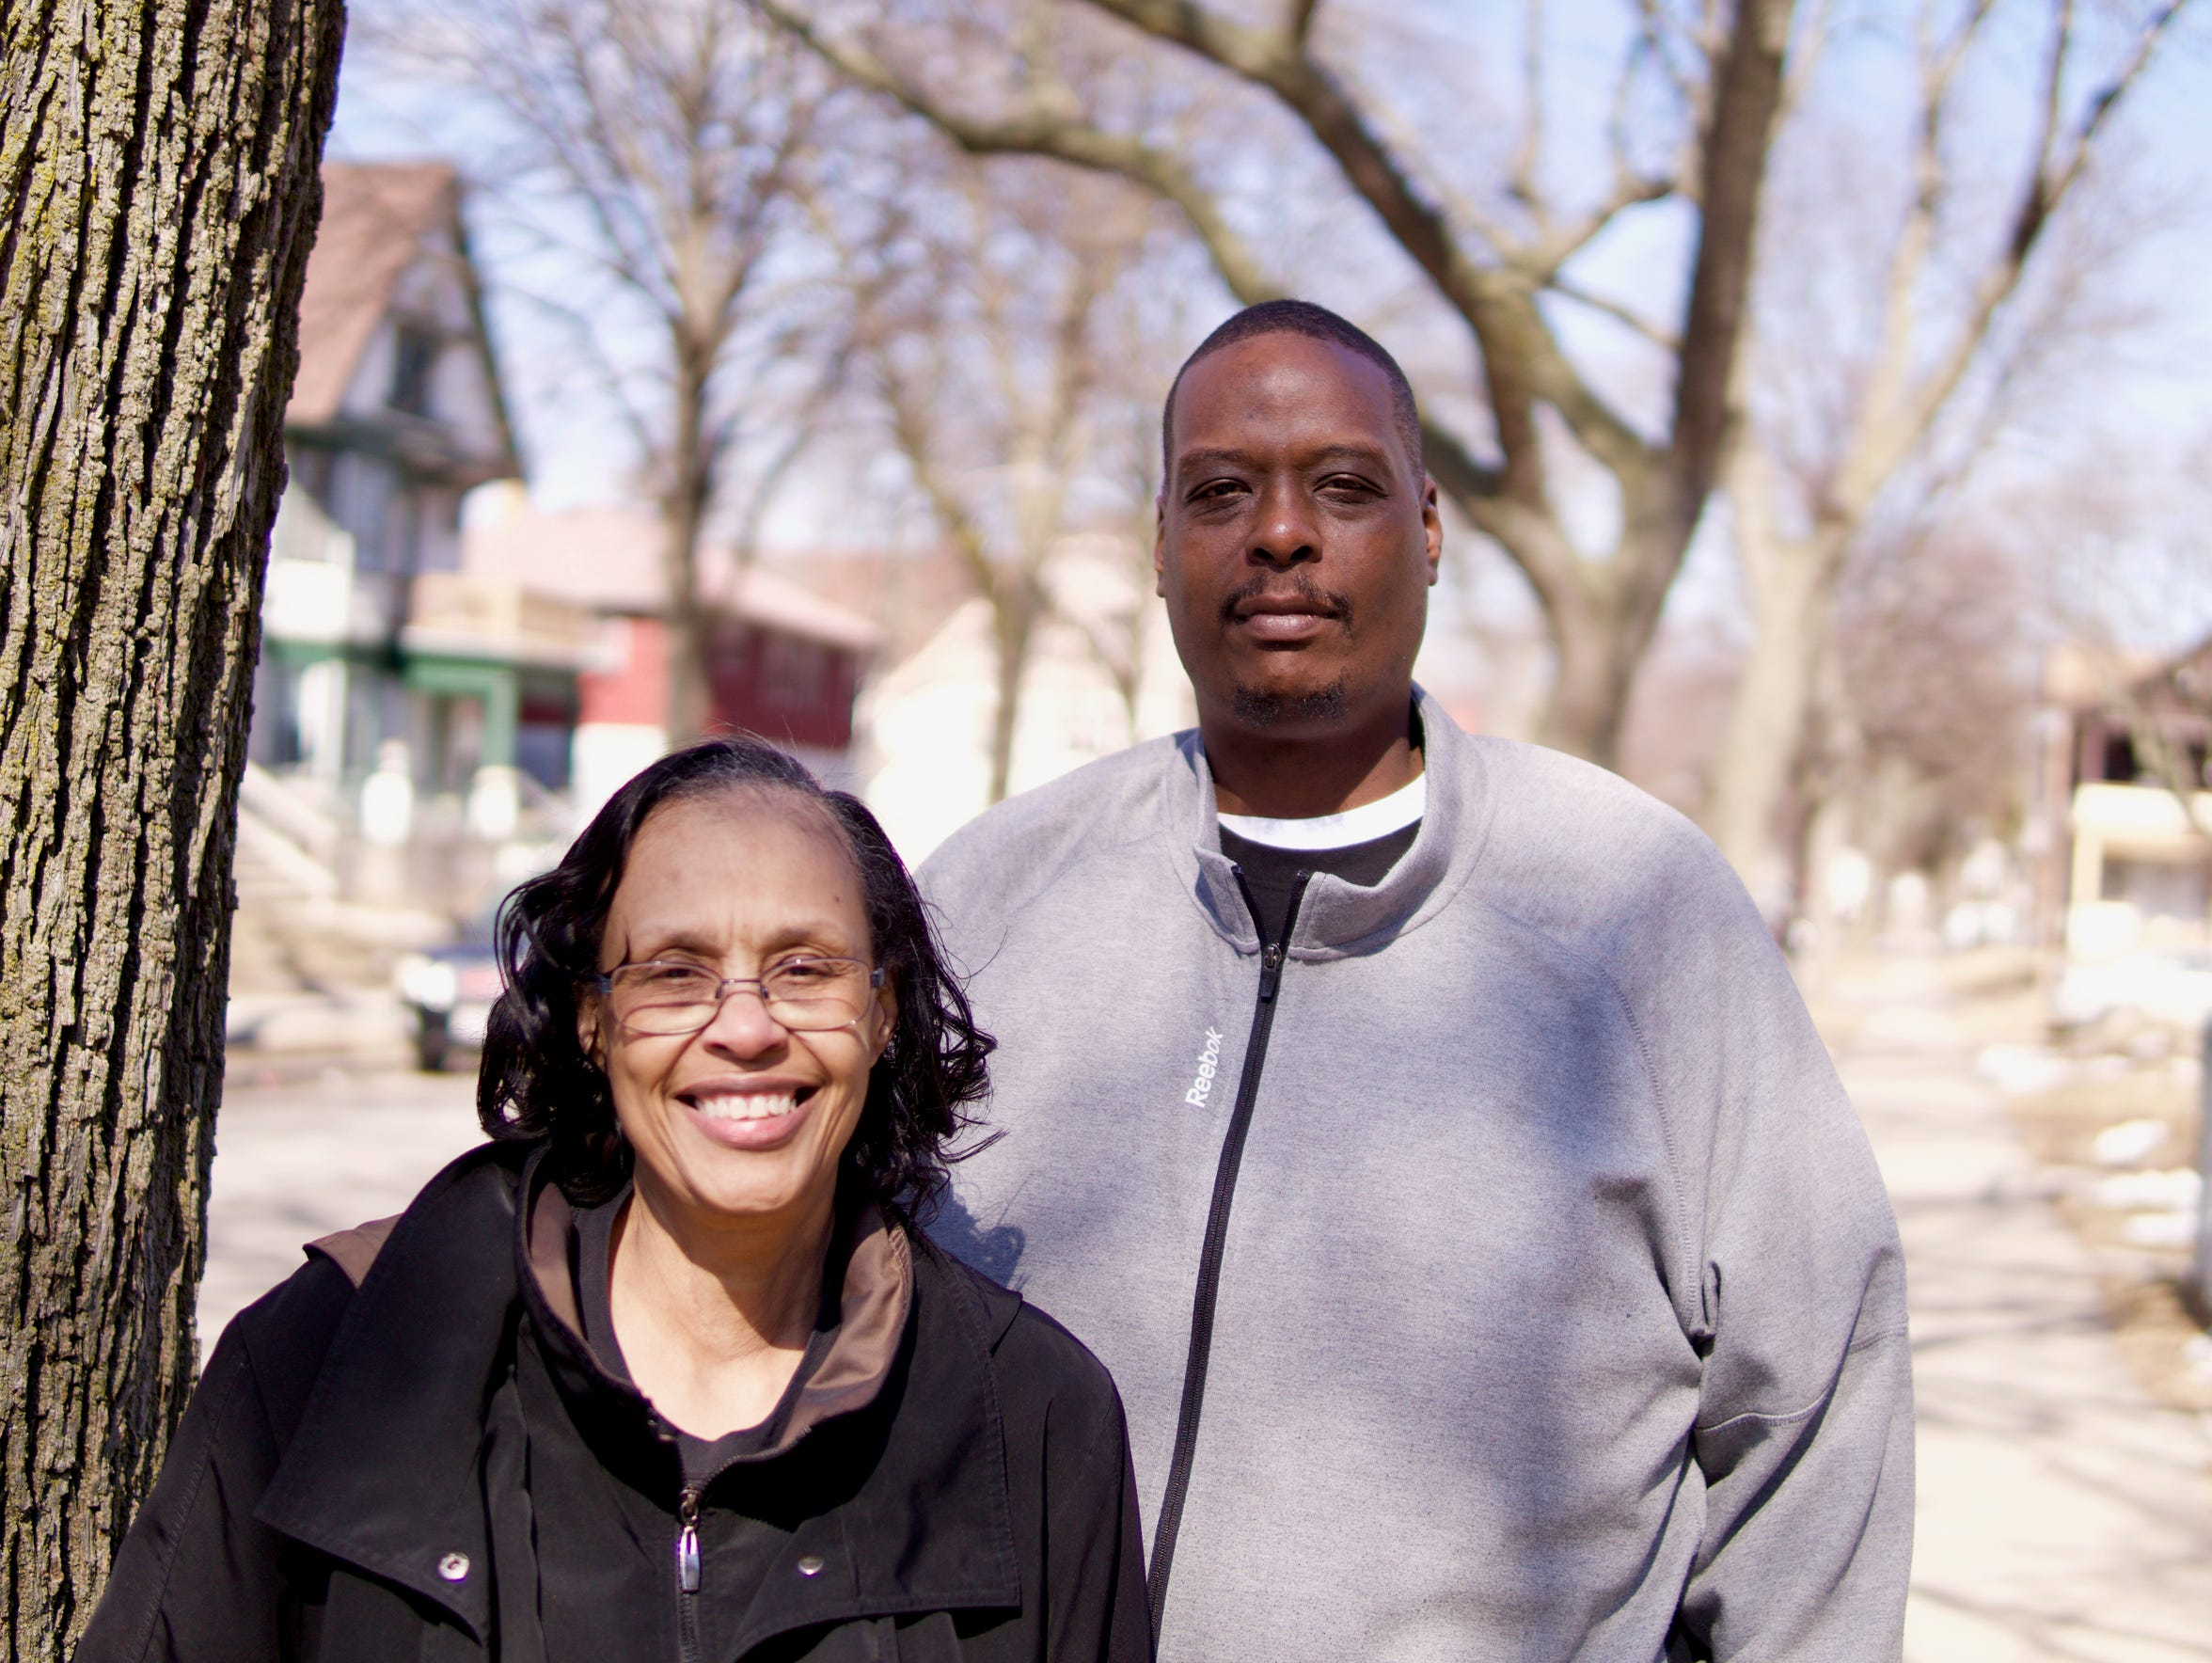 Josephine Key and her son, James, help run a block group on North Buffum Street in Milwaukee.